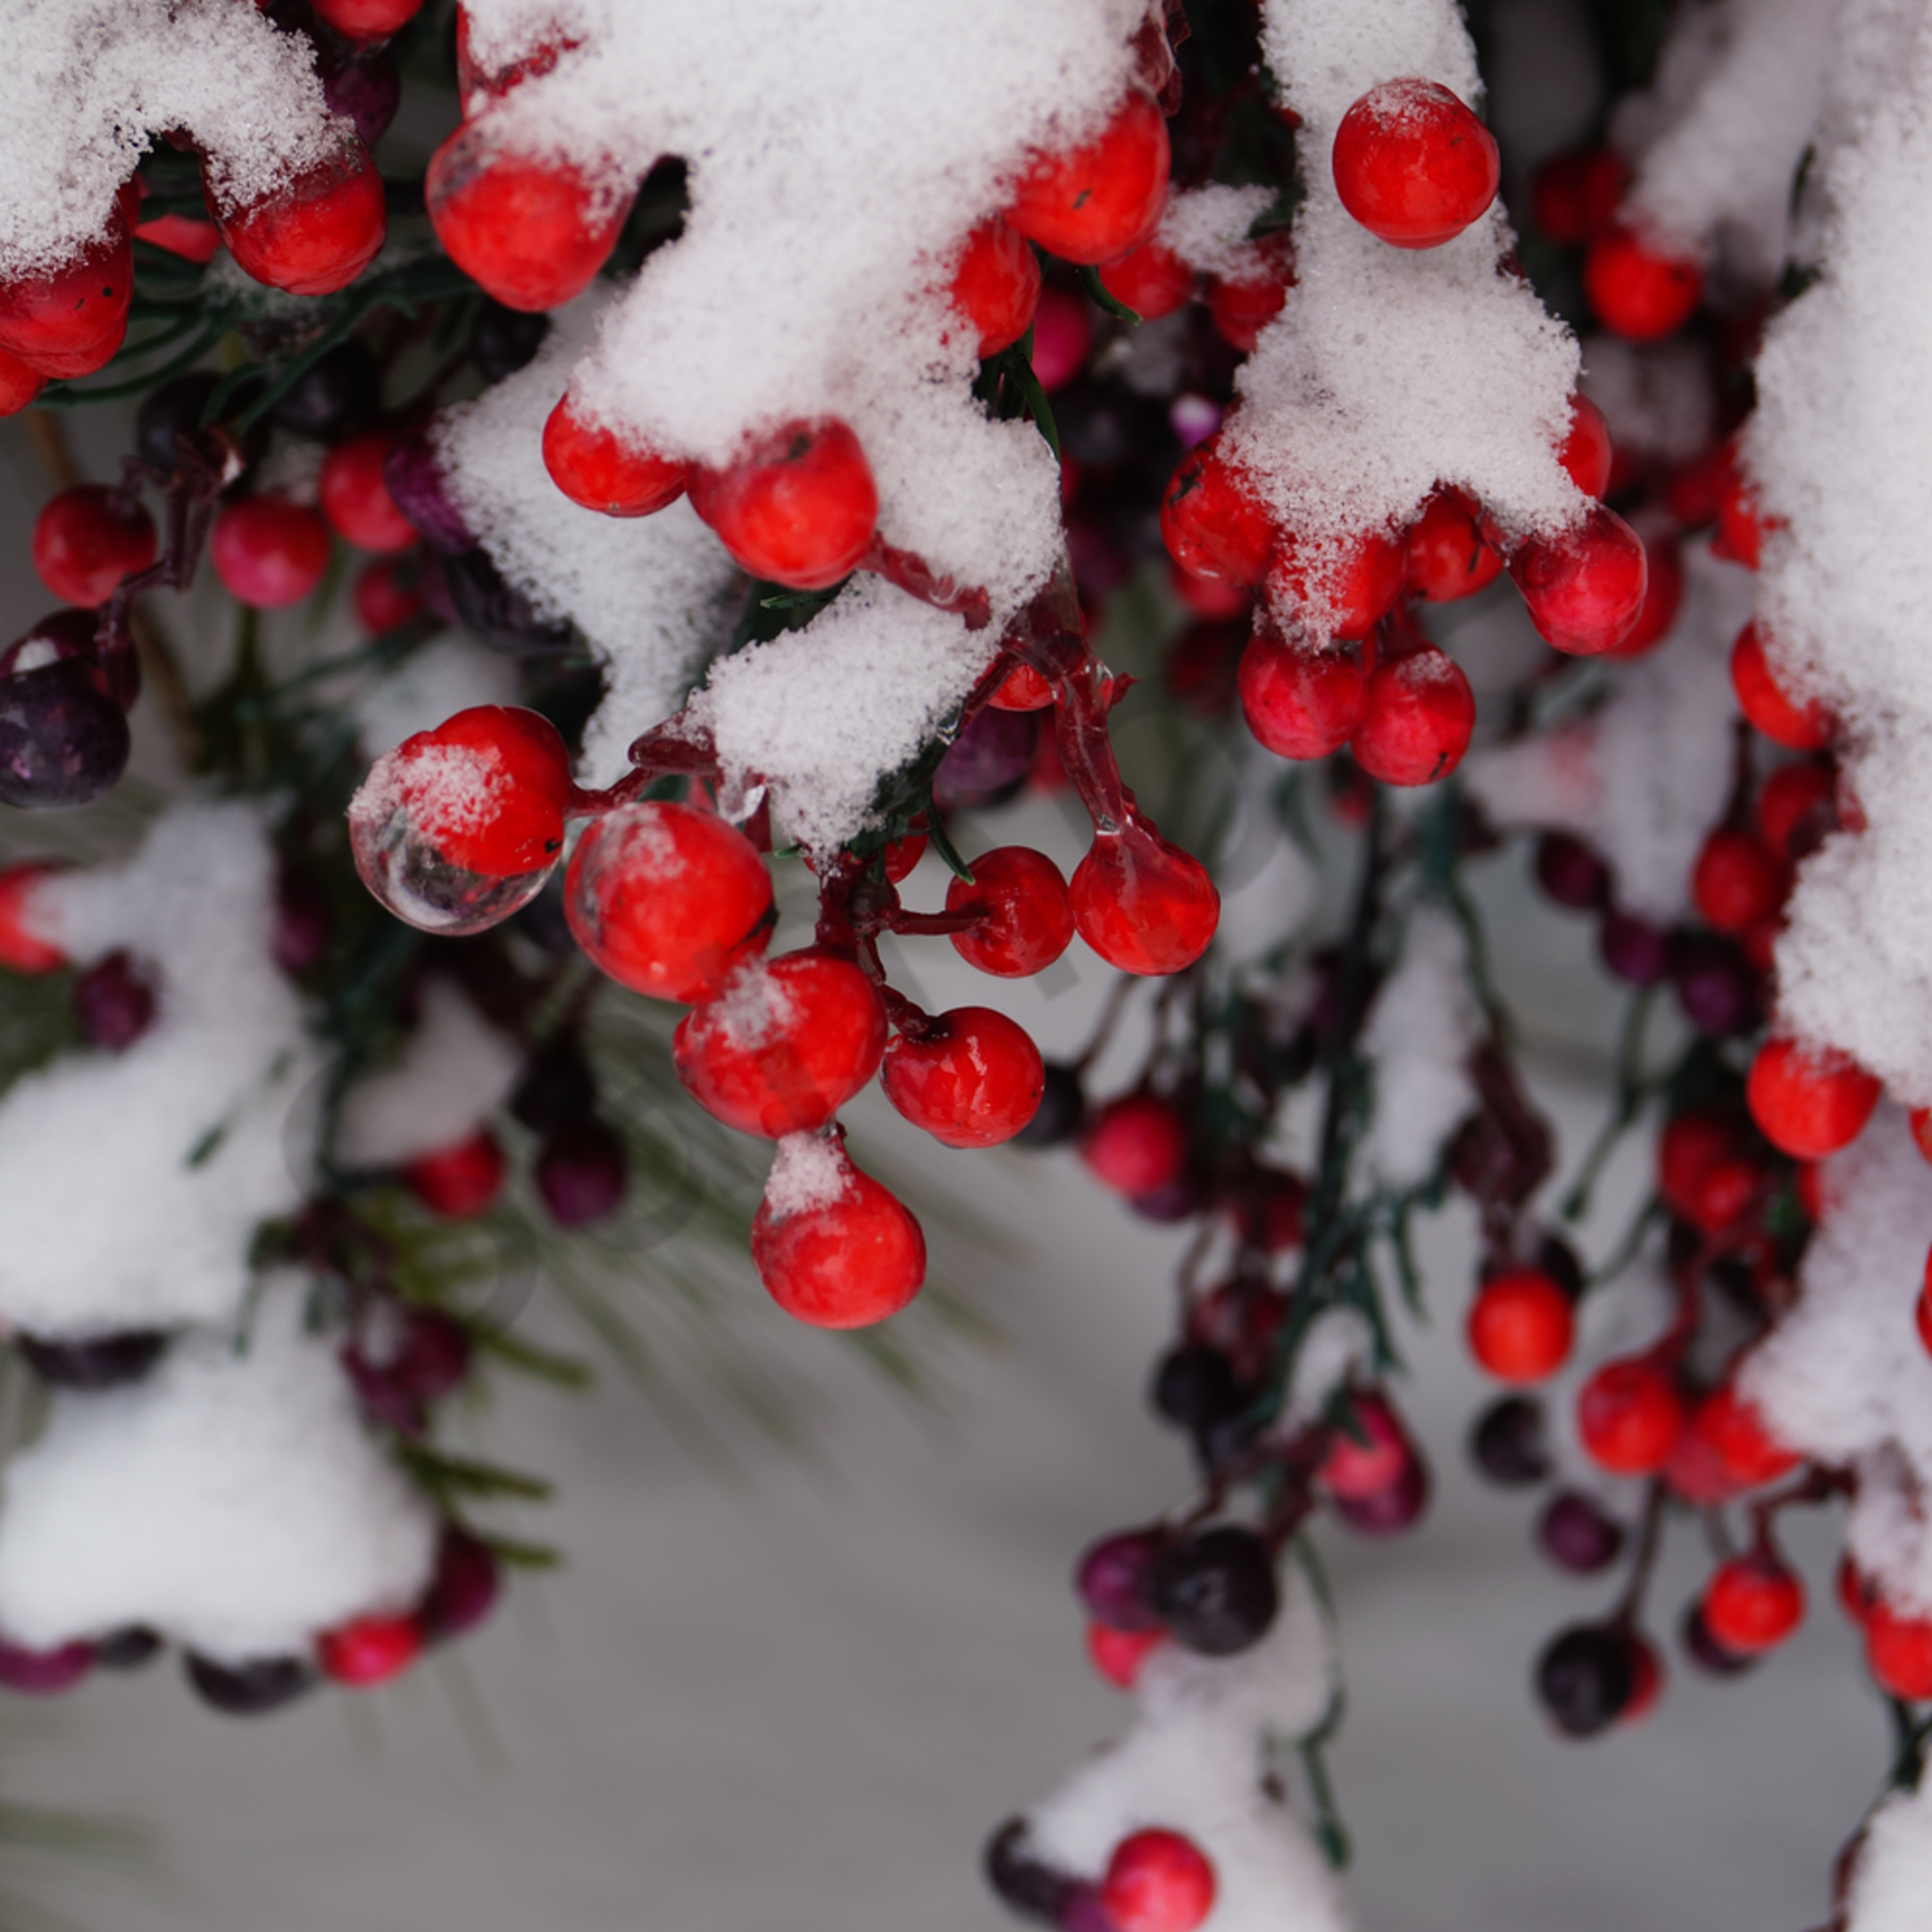 Wintry berries cr88mv